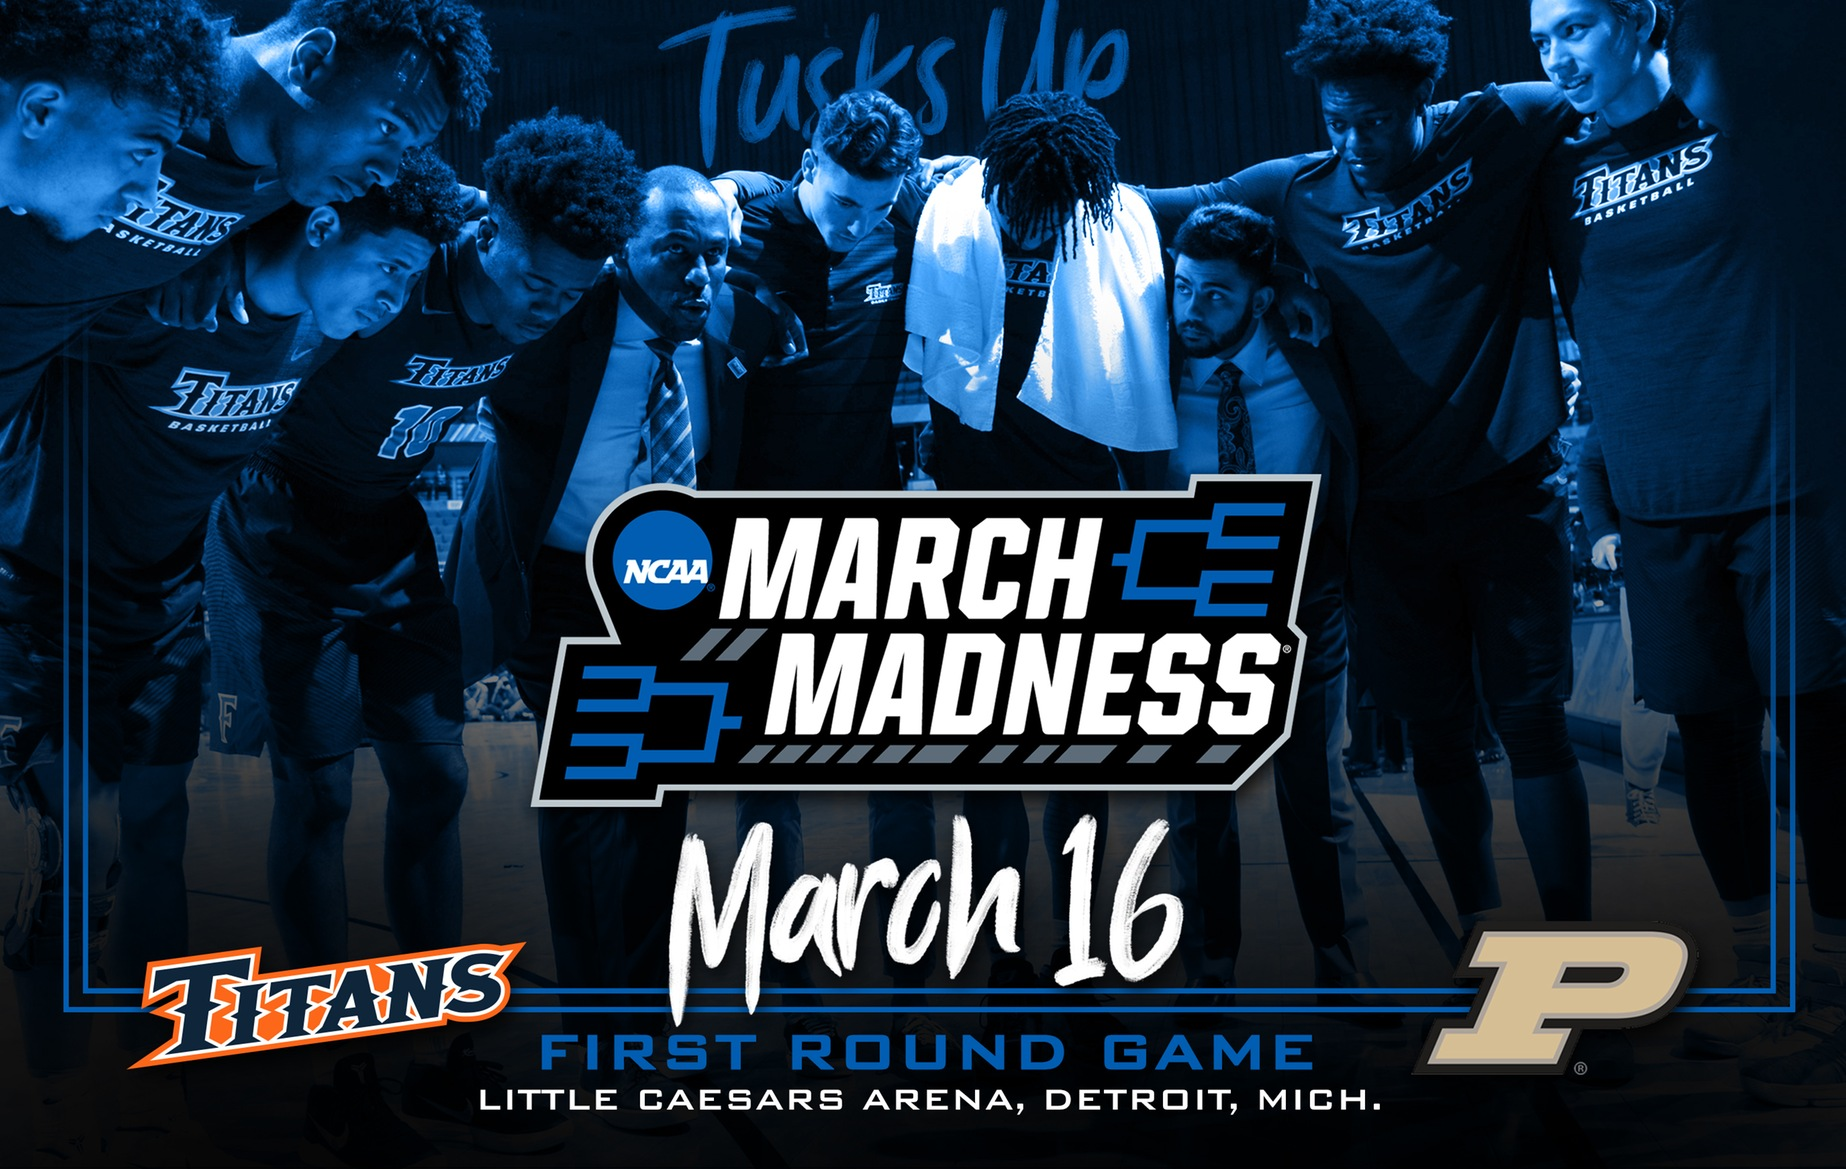 Men's Basketball Earns No. 15 Seed in East Region, Heads to Motown to Face Purdue